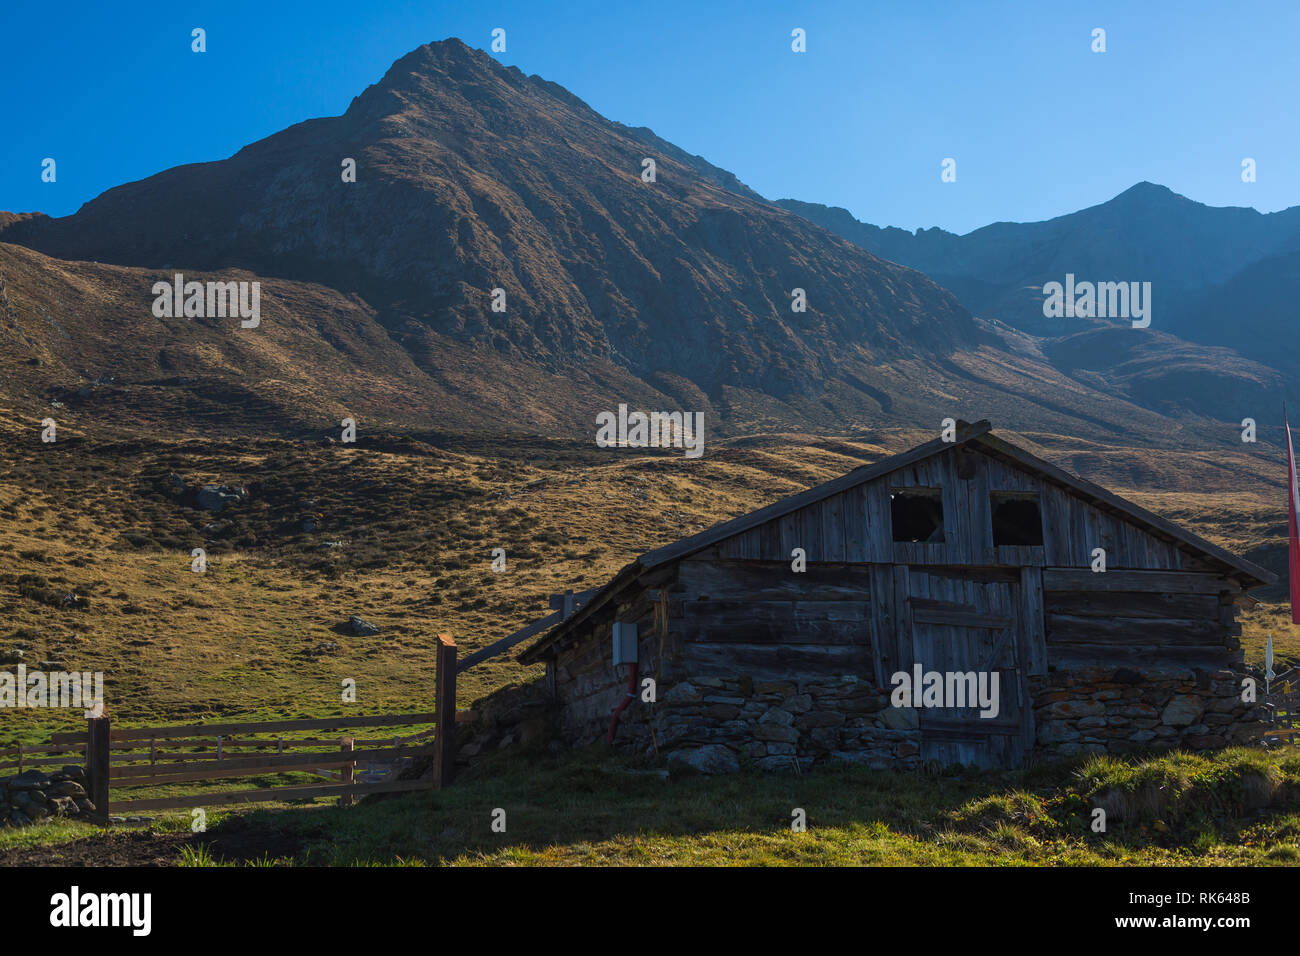 A House in the mountains - Stock Image